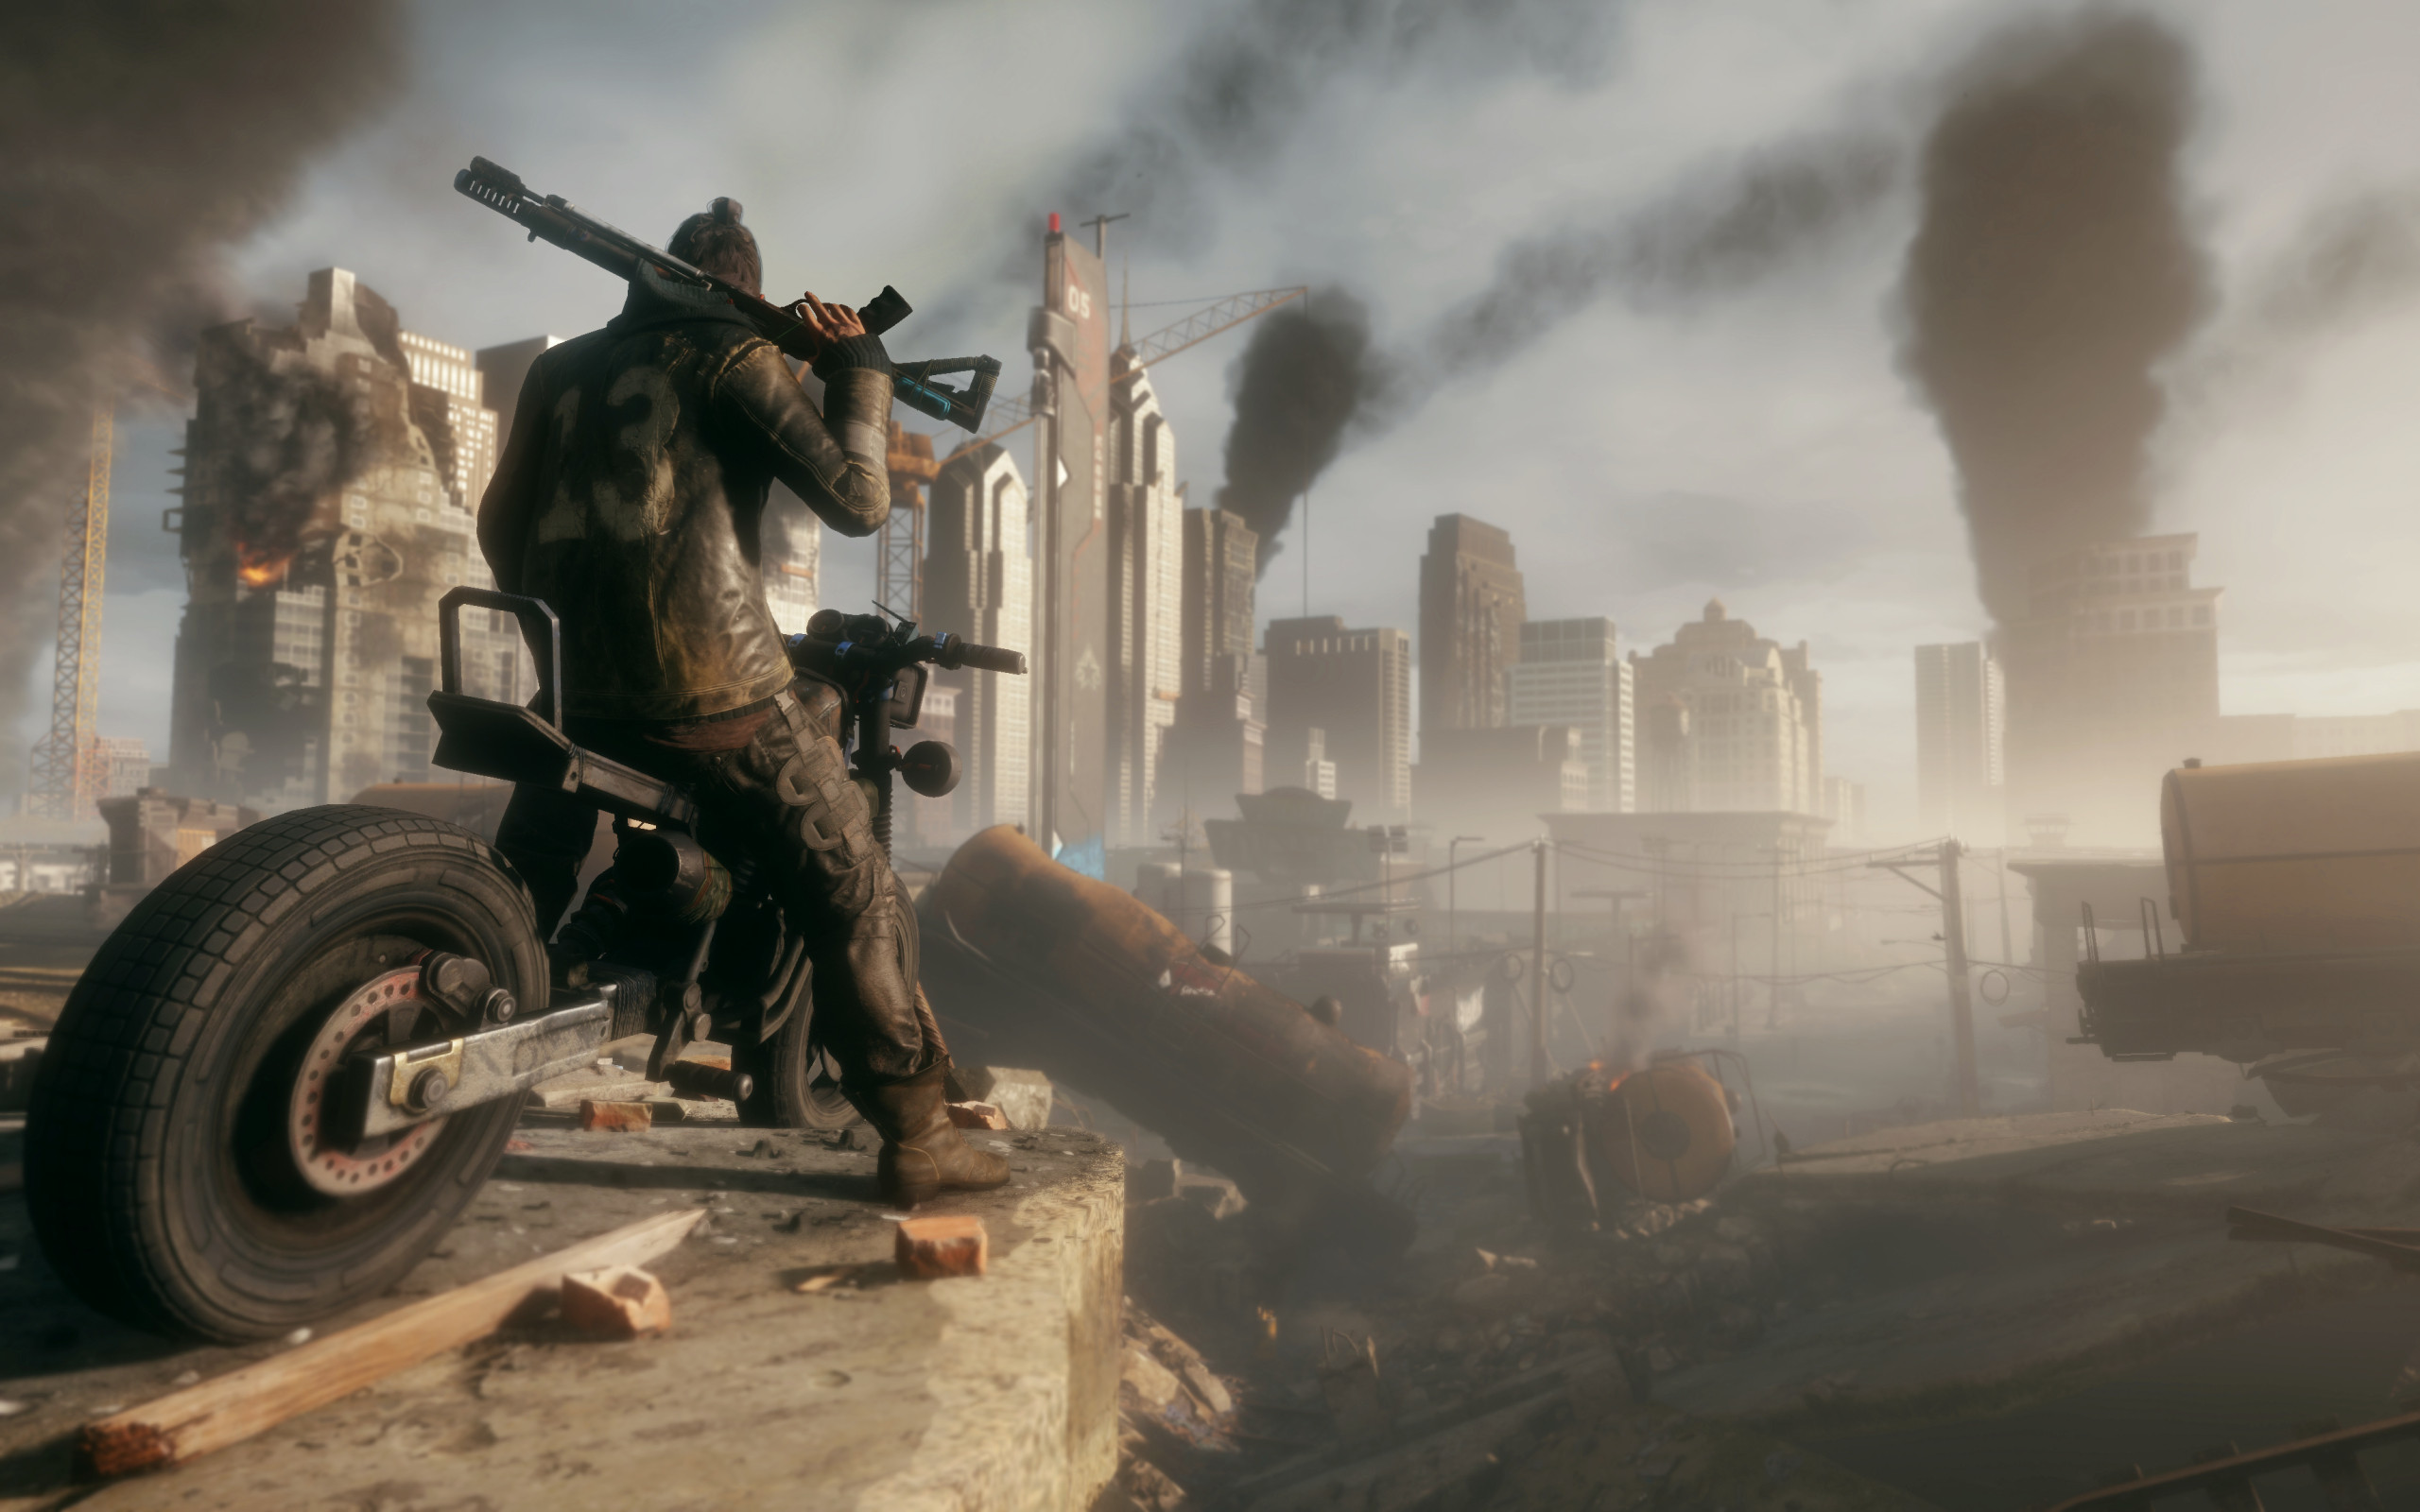 Обои Homefront: The Revolution, мотоцикл, байкер, город